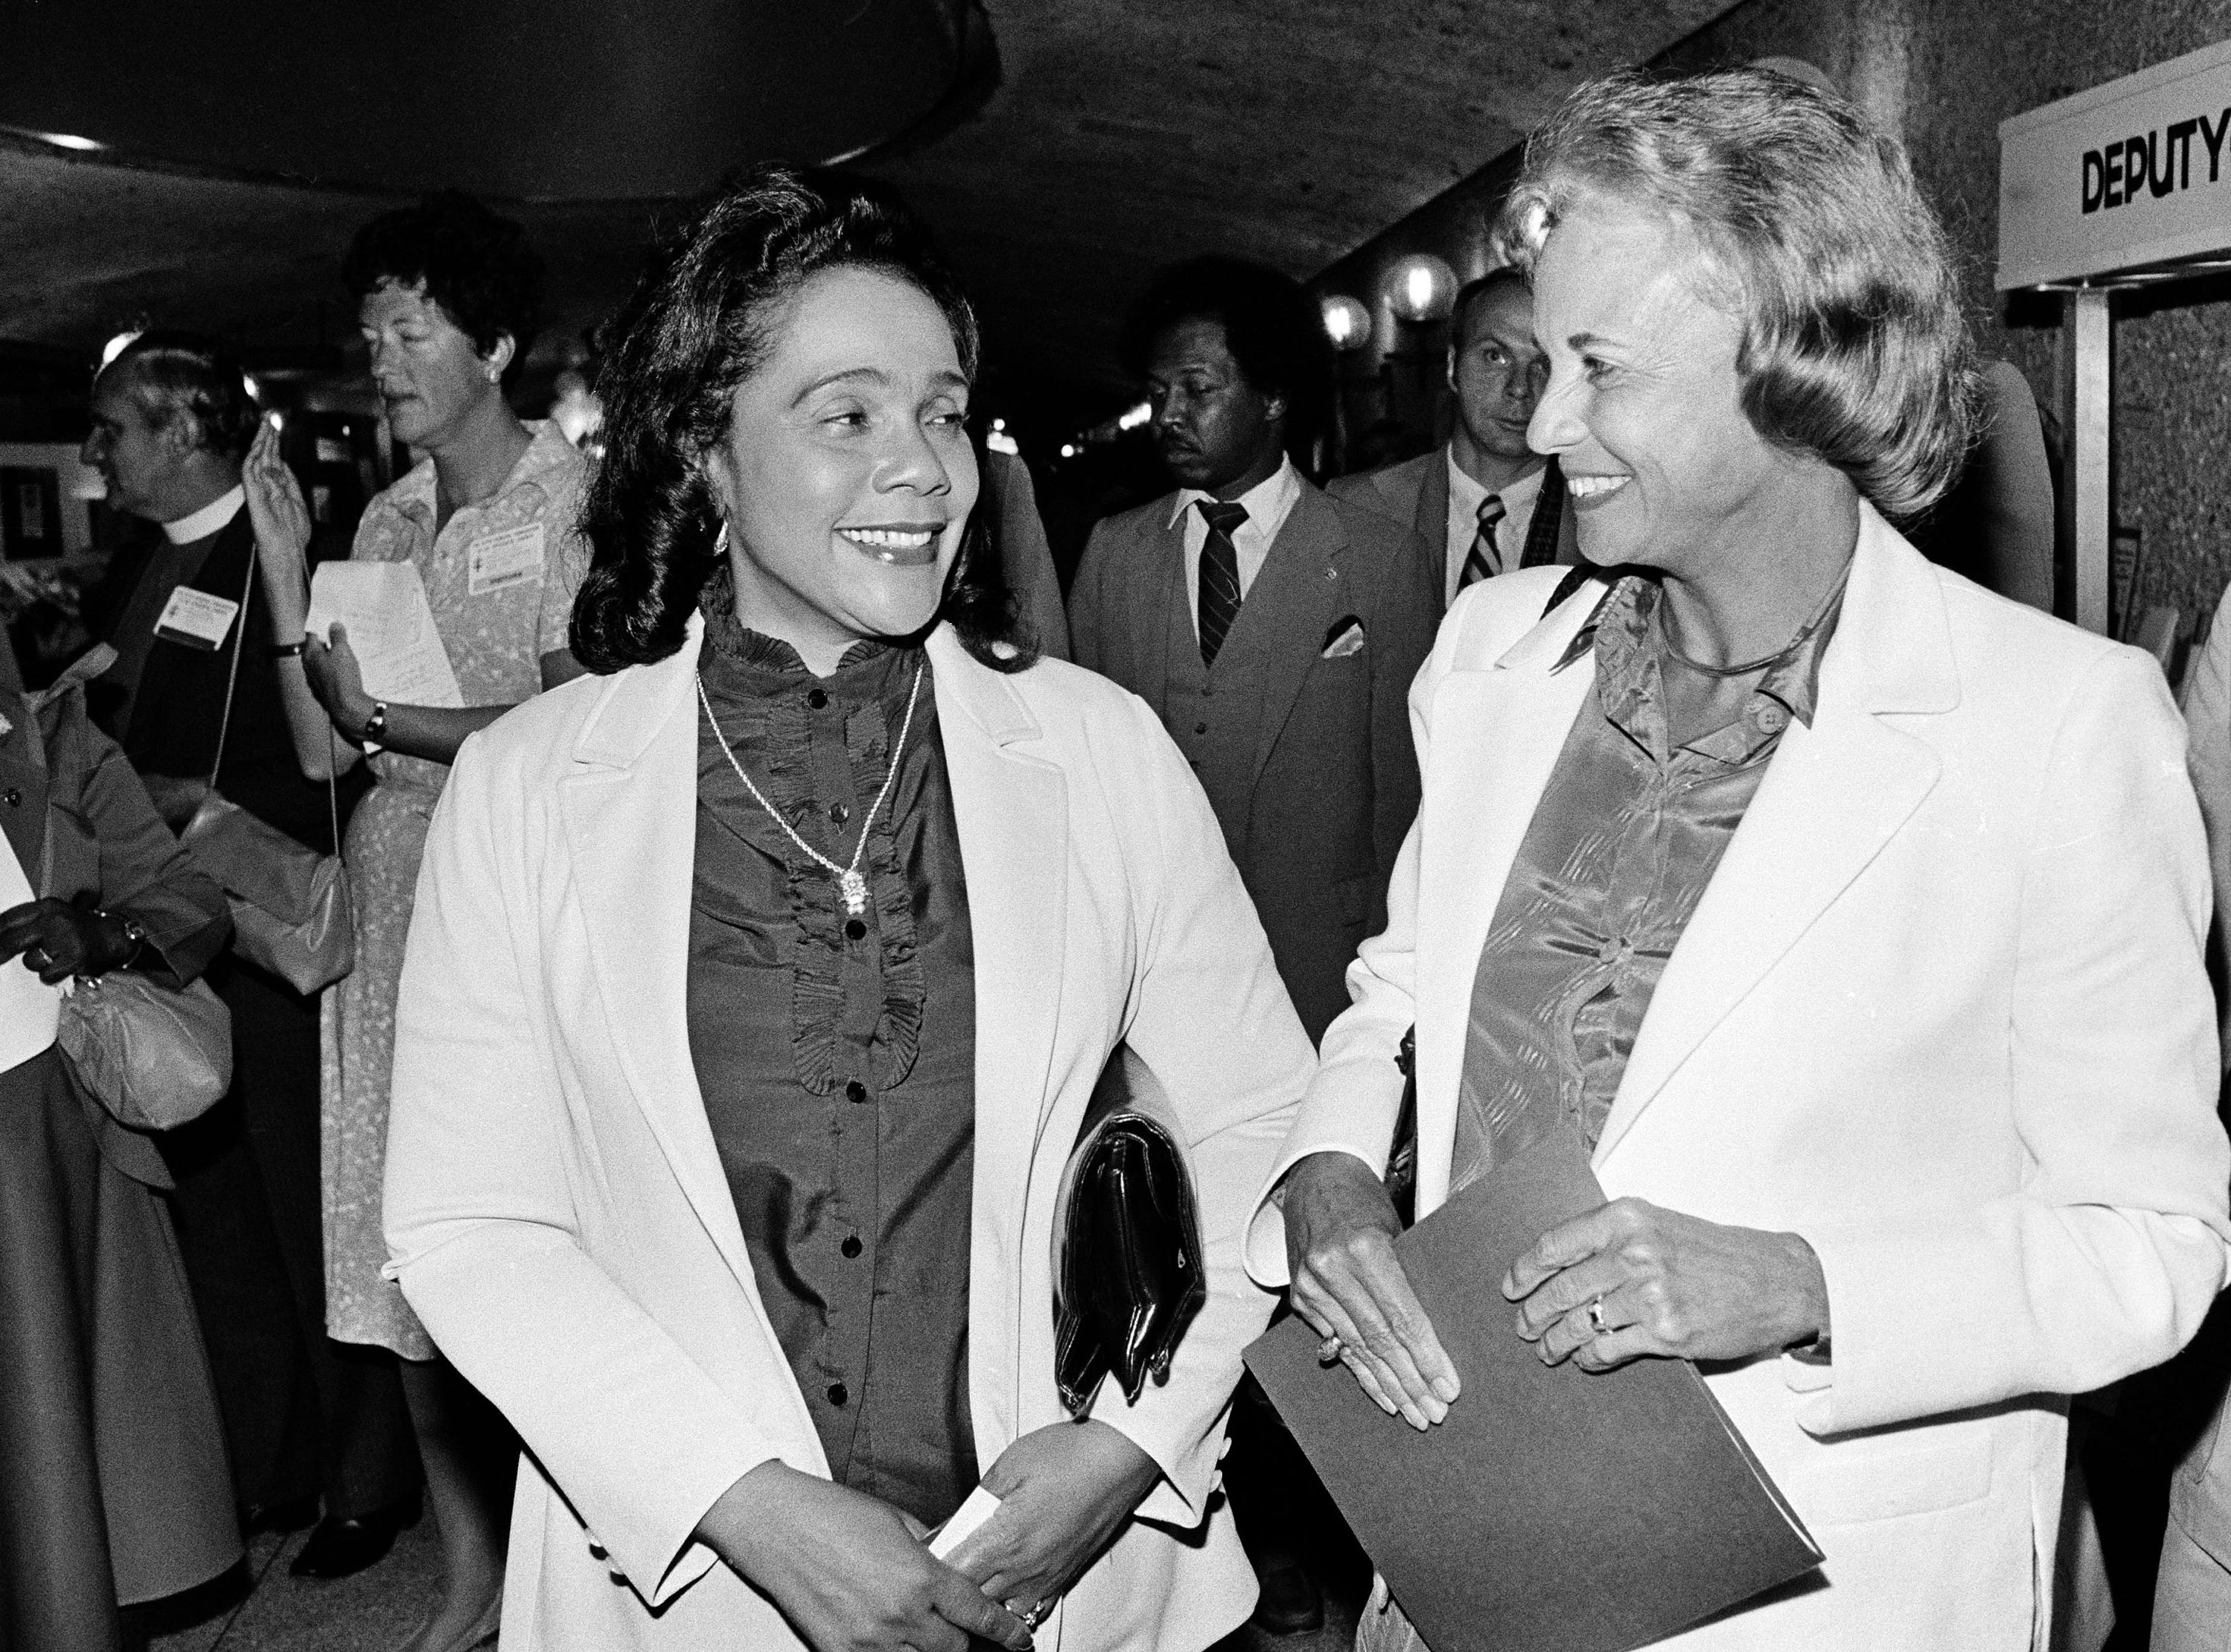 U.S. Supreme Court justice Sandra Day O'Connor greets Coretta Scott King, widow of the slain civil rights leader Martin Luther King, at the Episcopal Church Convention in New Orleans. Sept. 8, 1982 where they appeared on a panel.